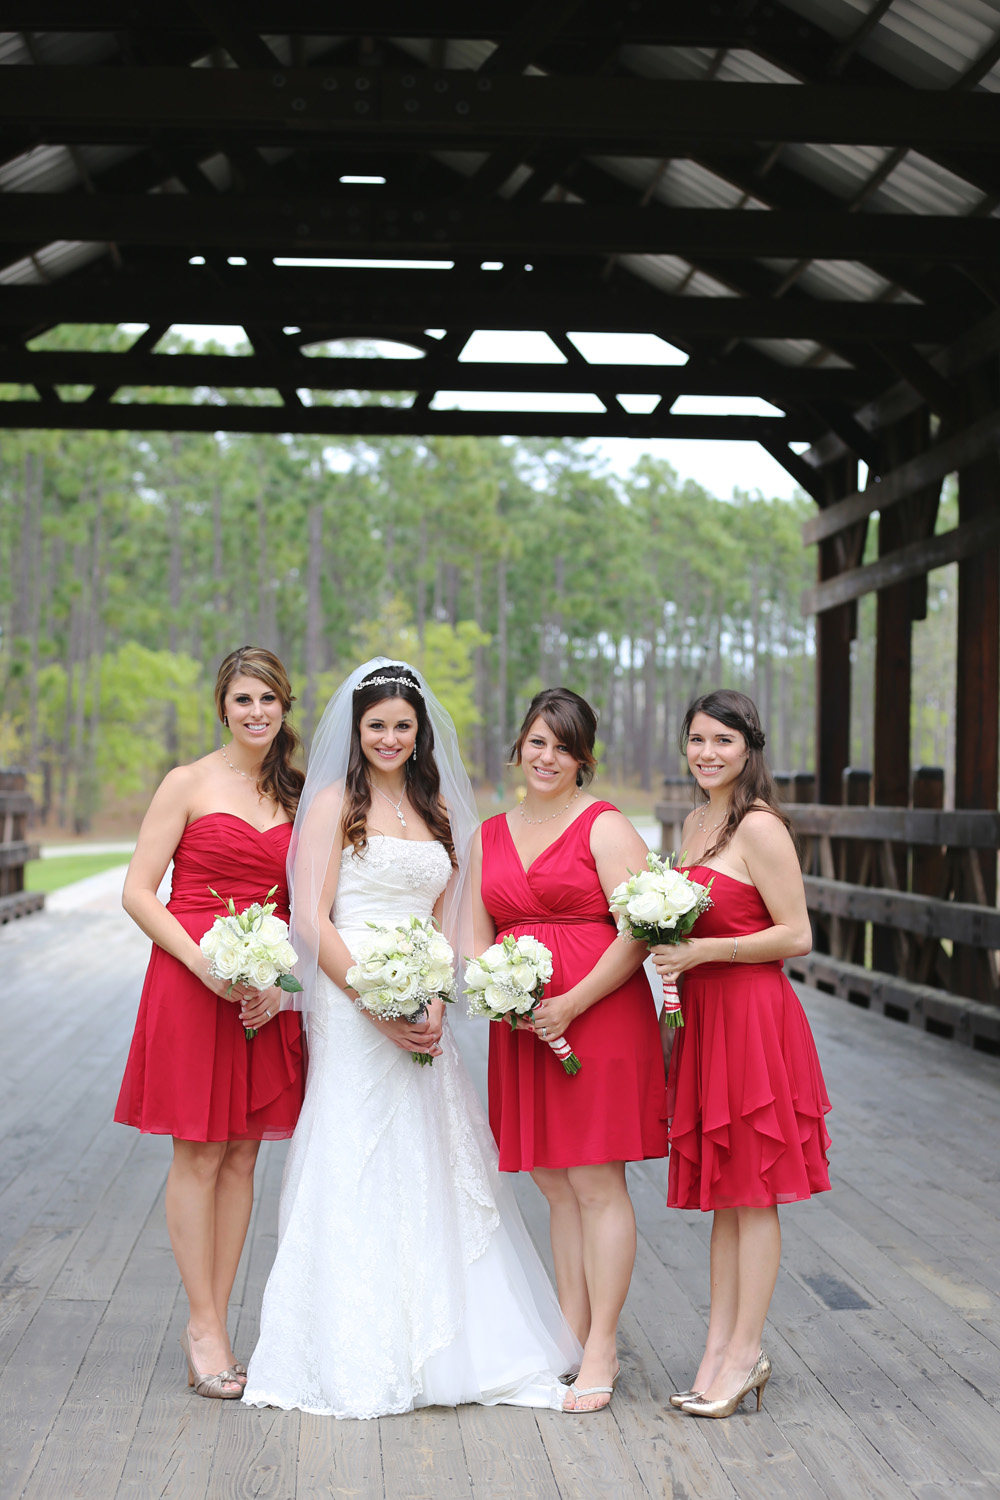 St_James_Plantation_Wedding_Tiffany_Abruzzo_Photography_blog8.jpg